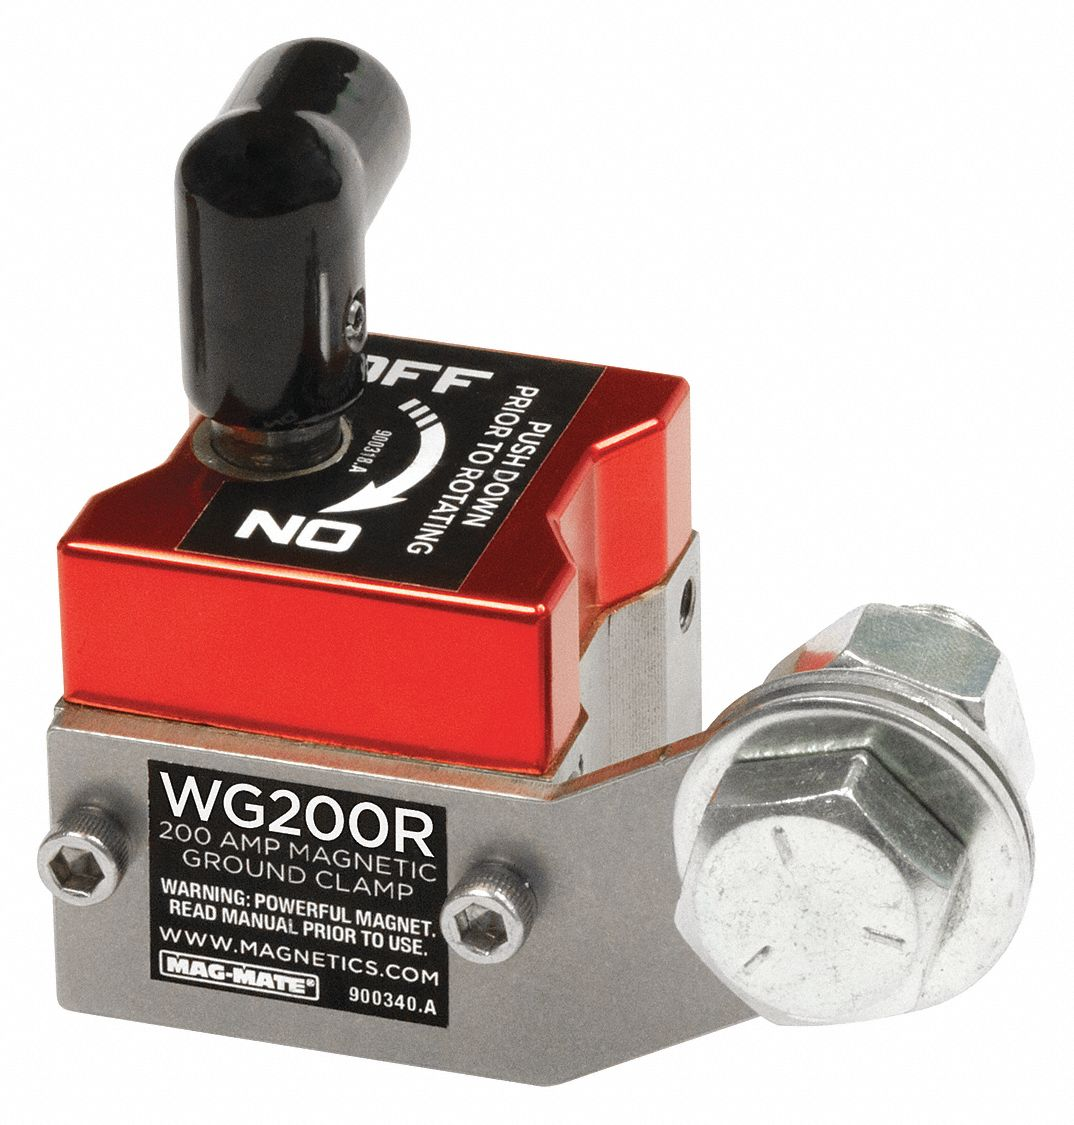 Amps: 200 A 150Lb 2-7//8X2-3//4In Mag-Mate Wg200r Magnetic Weld Ground